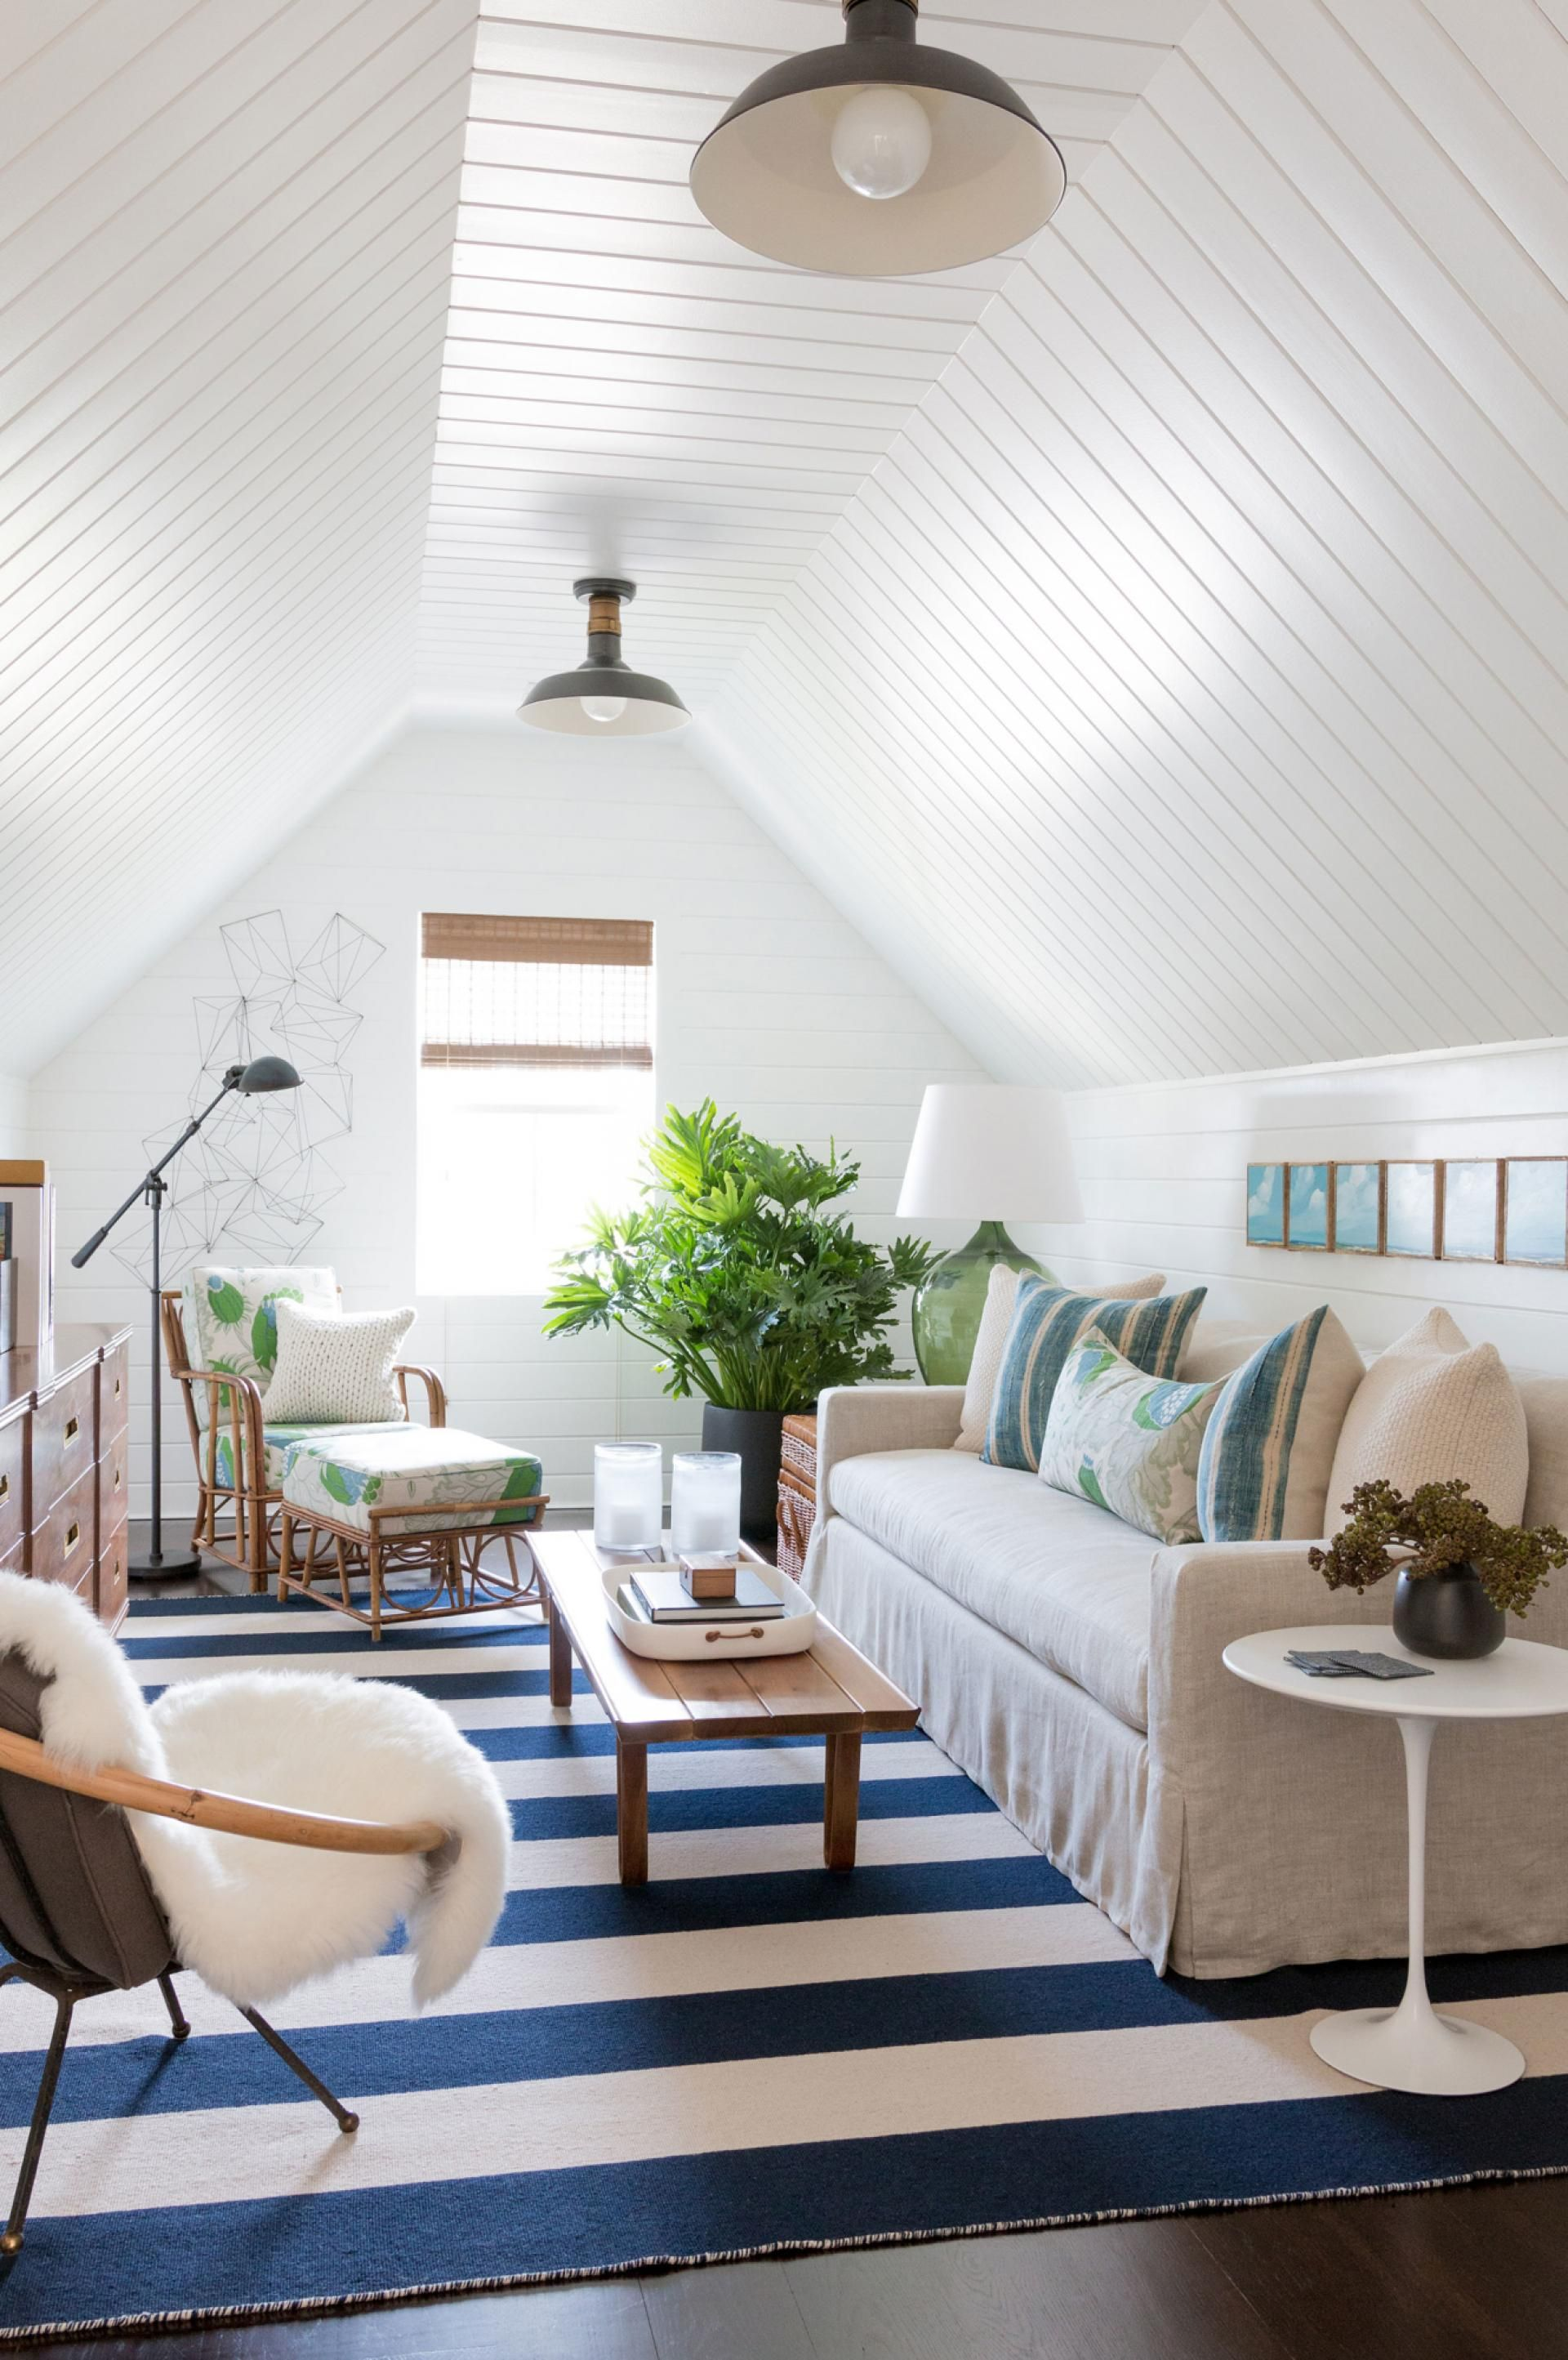 Attic Conversion Ideas To Tap Into Your Roofu0027s Potential. Attic Designed By  Matthew Caughy Interiors